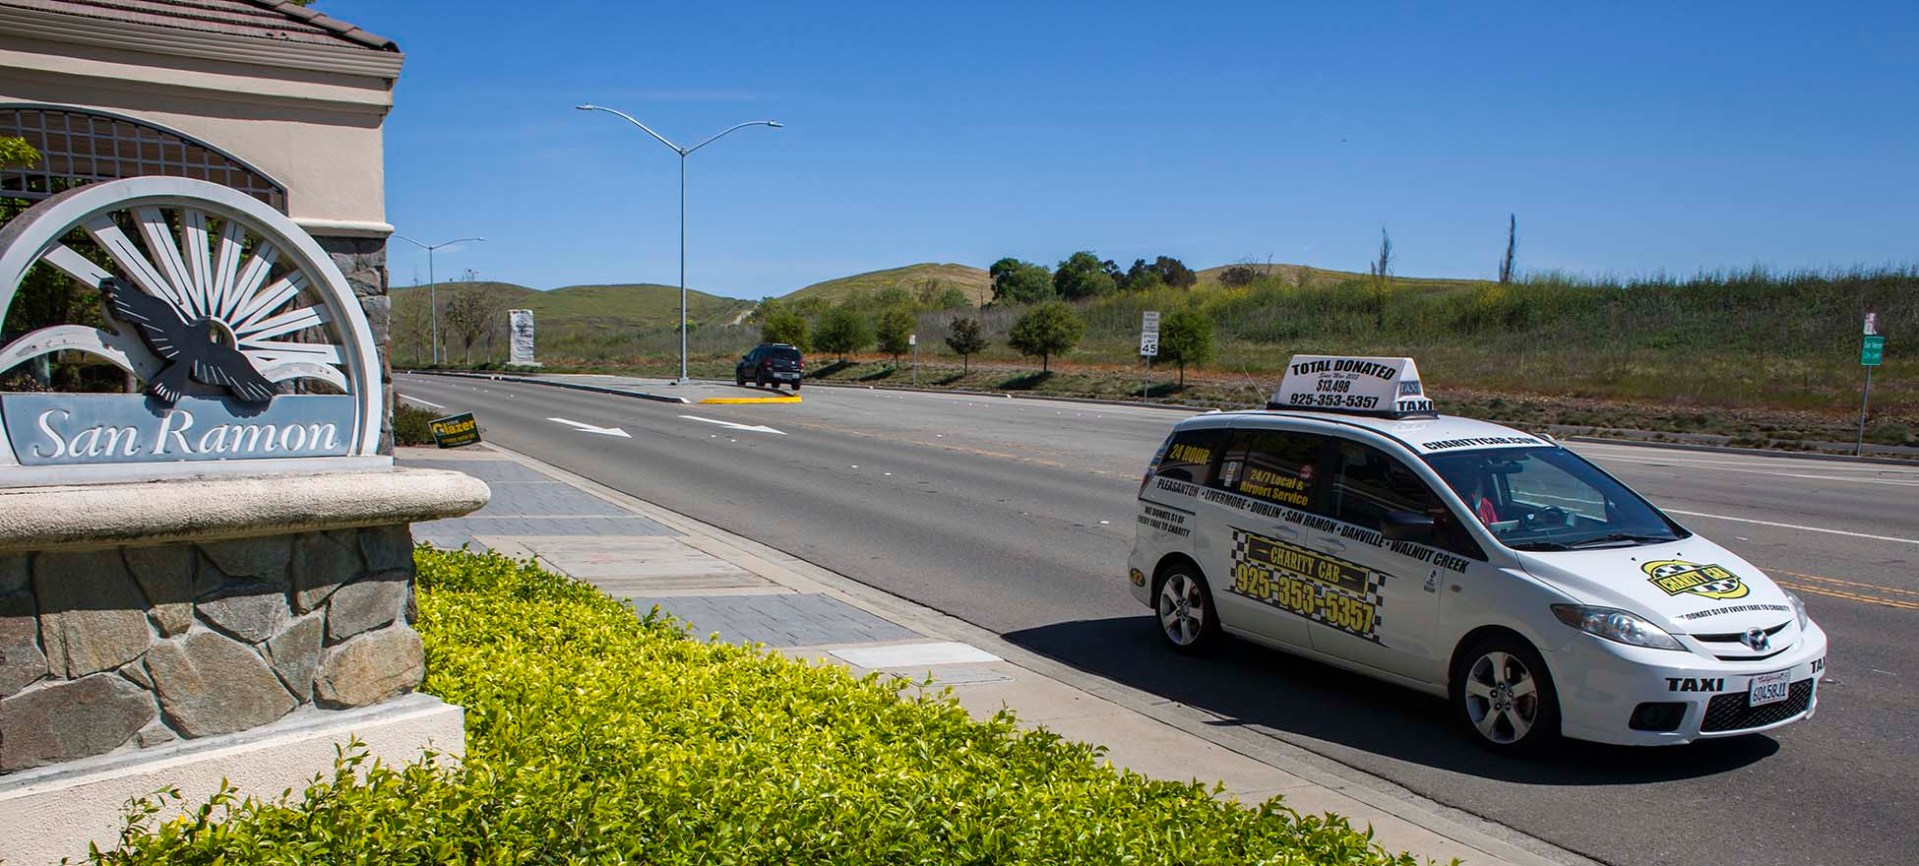 Charity Cab taxi drives by San Ramon city sign